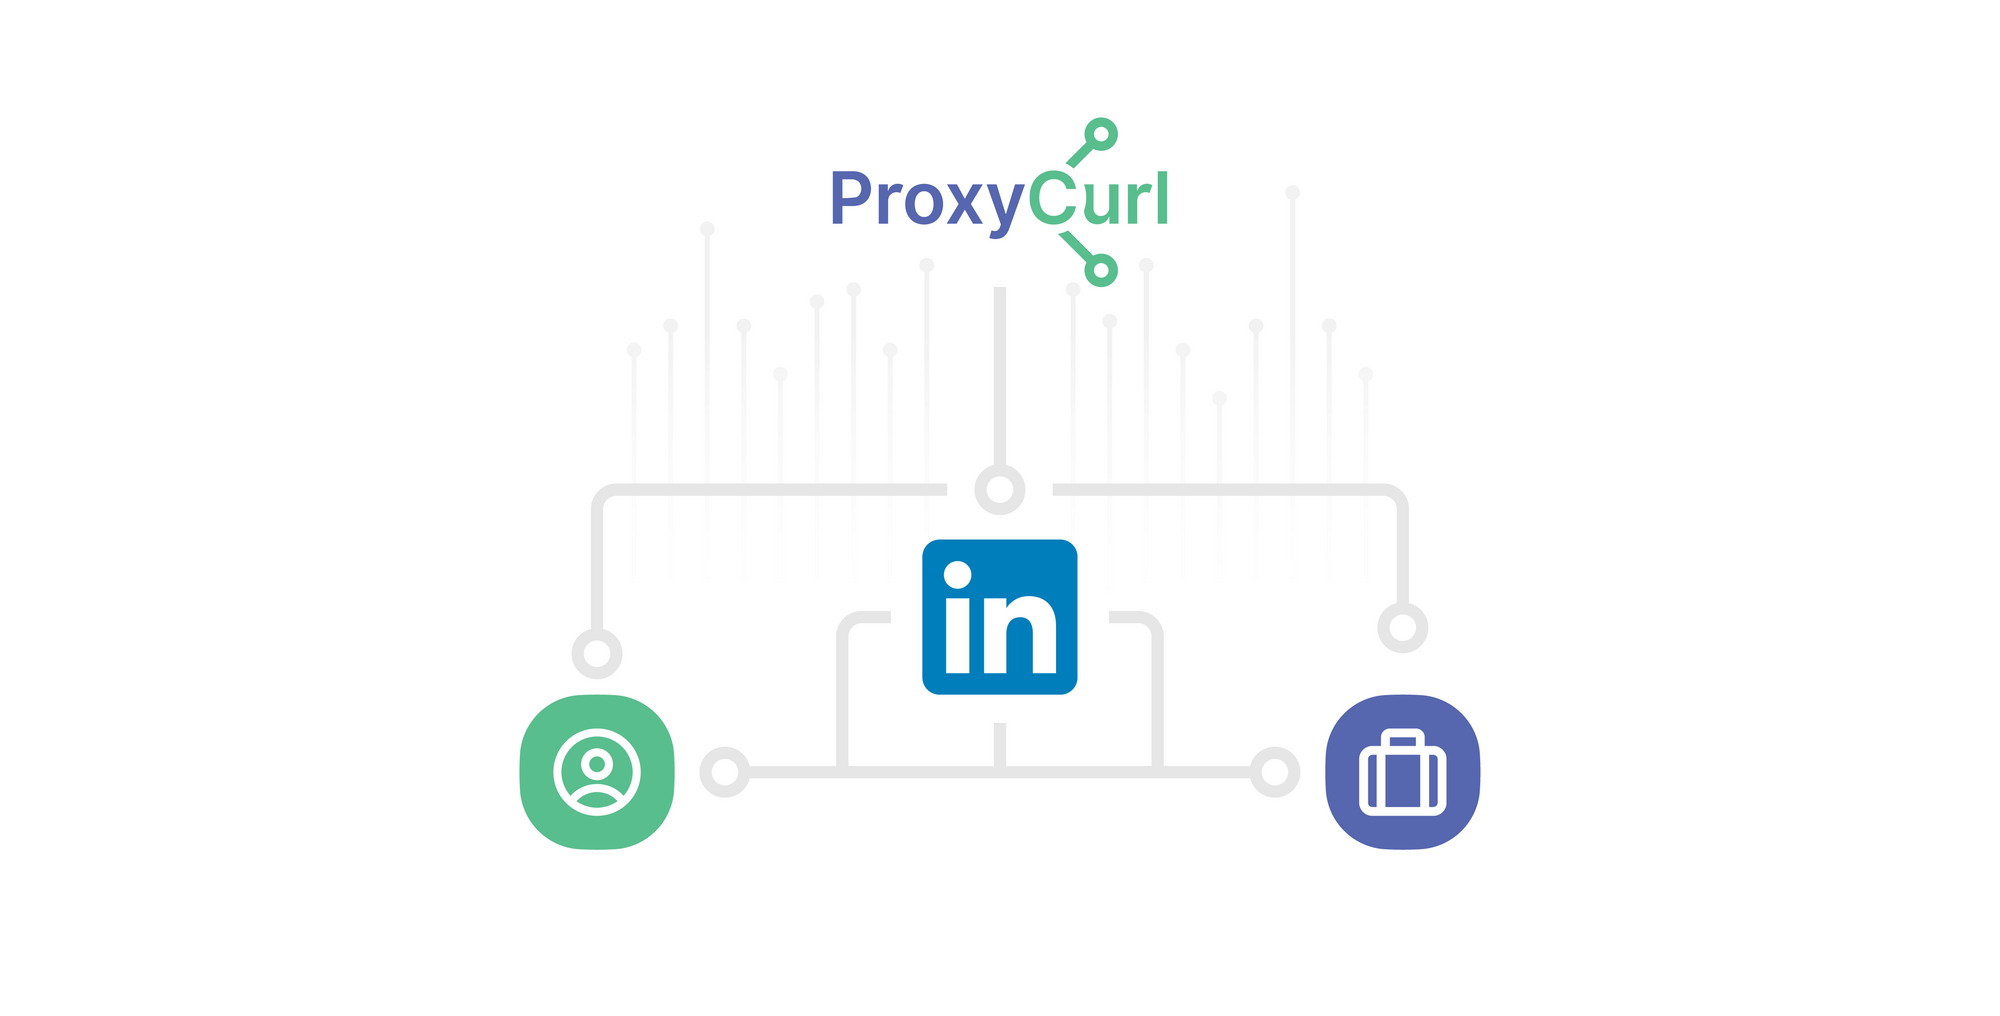 New Job endpoints on Proxycurl to supercharge your job board